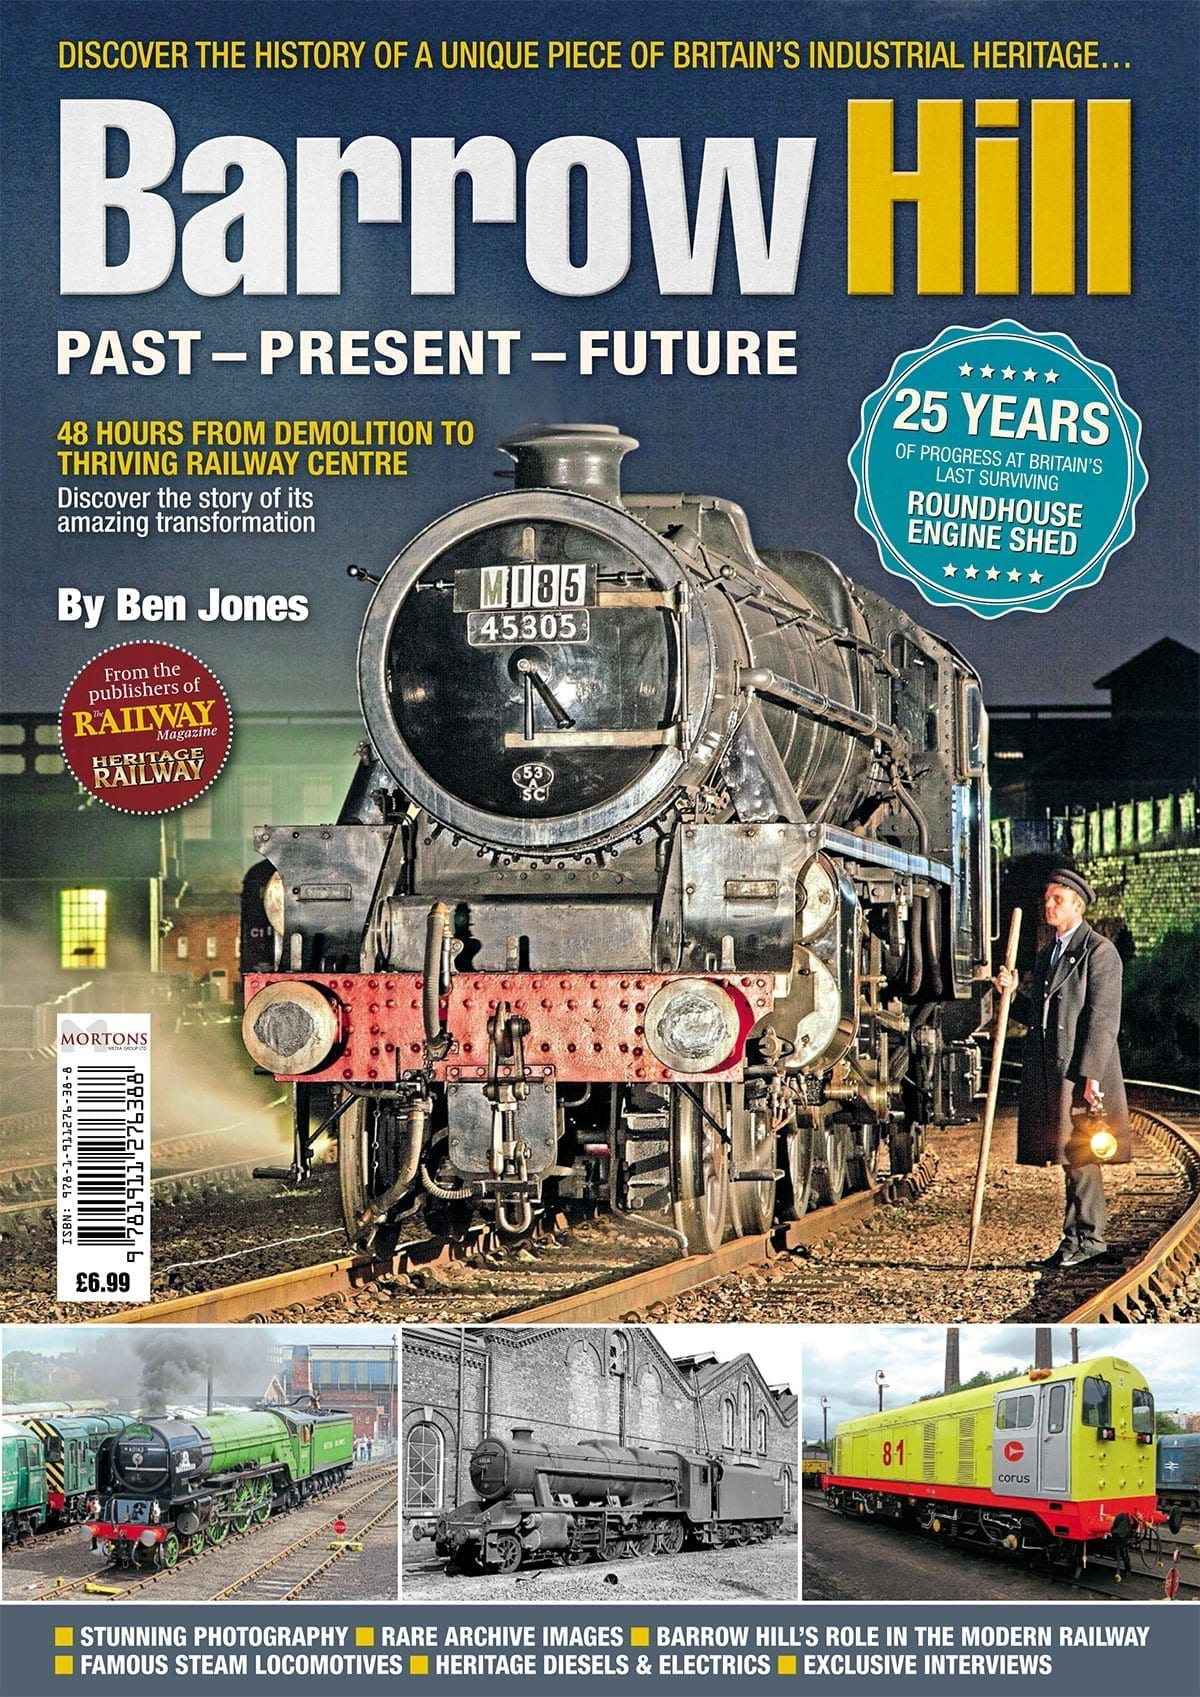 Barrow Hill: Past, Present, Future